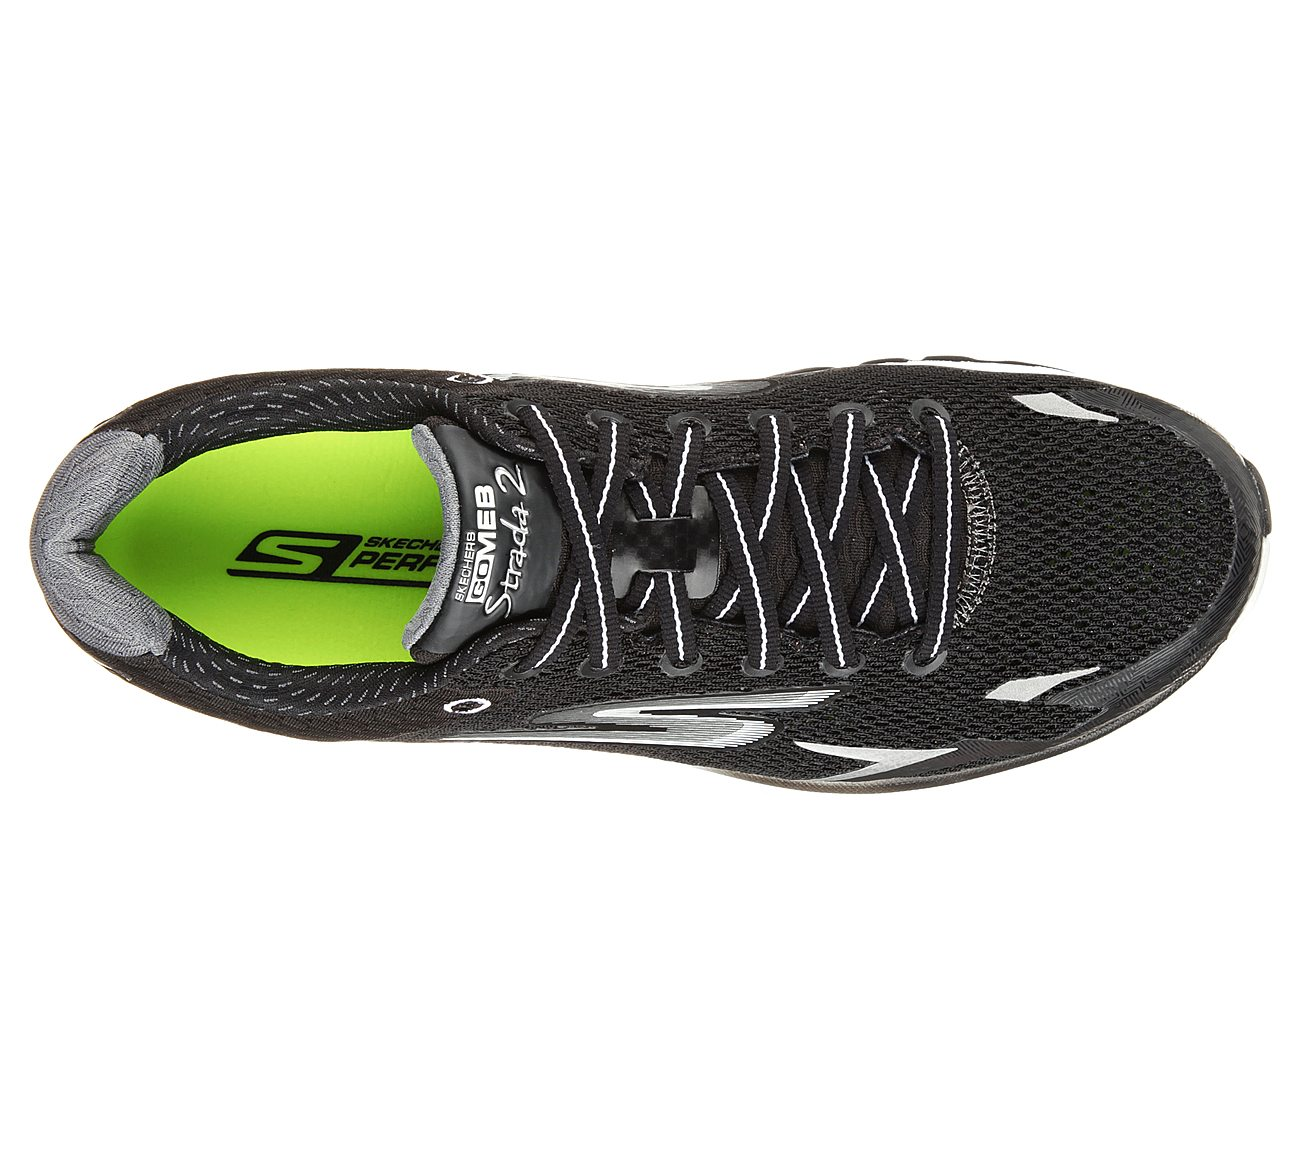 Buy SKECHERS Skechers GOmeb Strada 2 Skechers Performance Shoes only £117.00